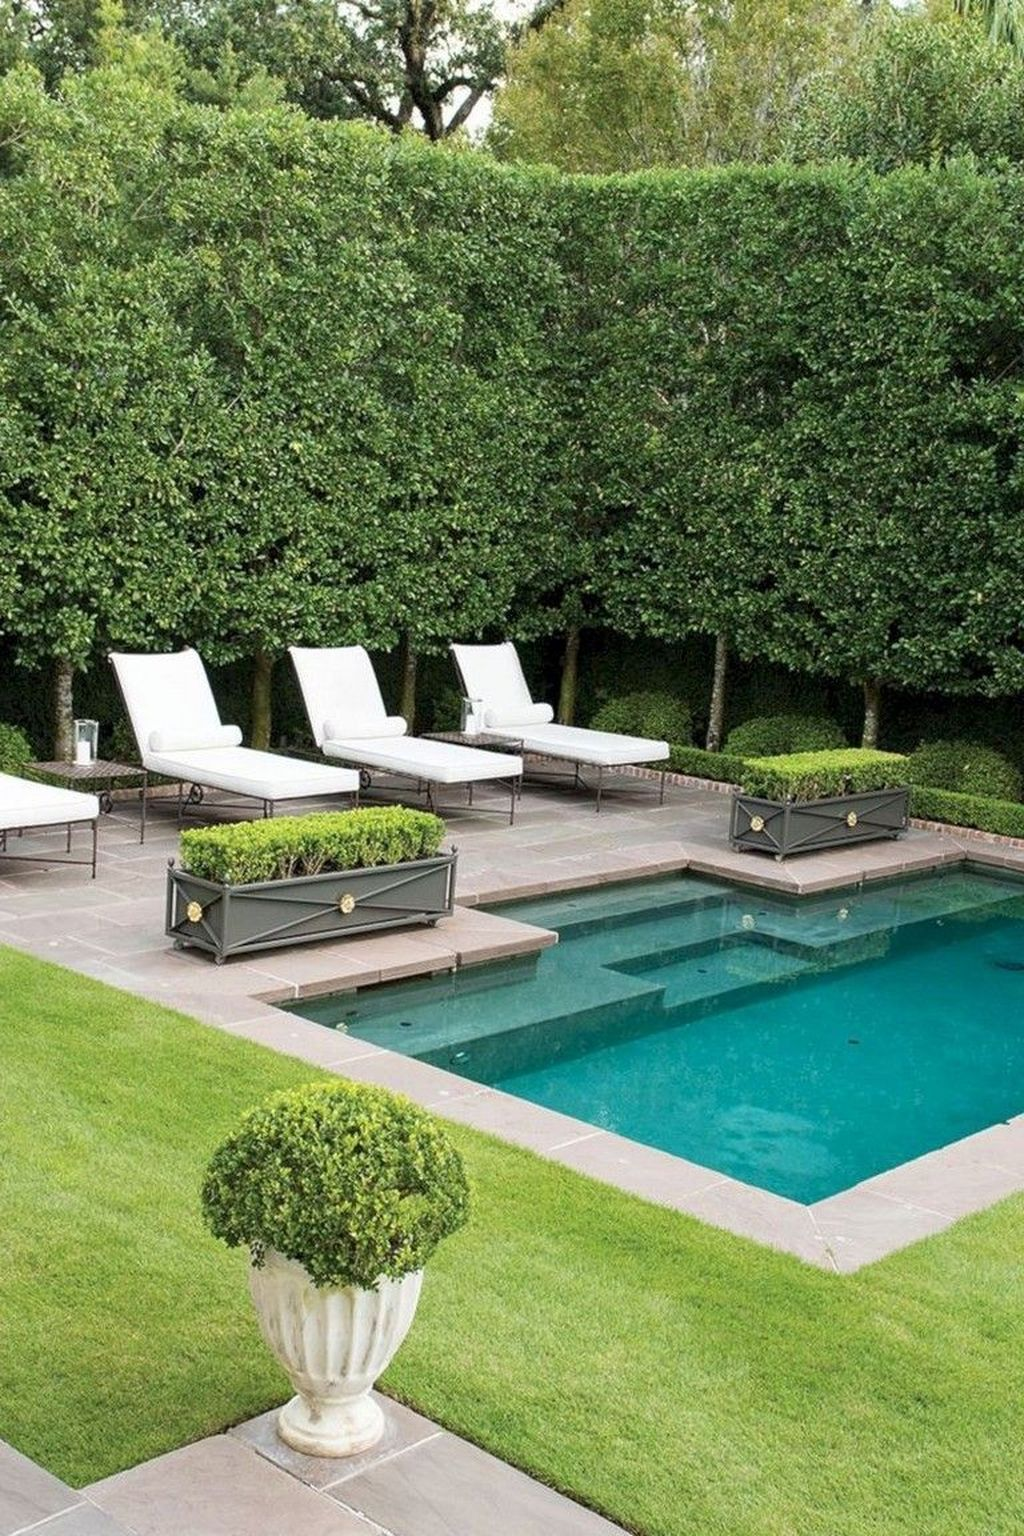 20 Luxurious Pool Design Ideas For Your Home Swimming Pools